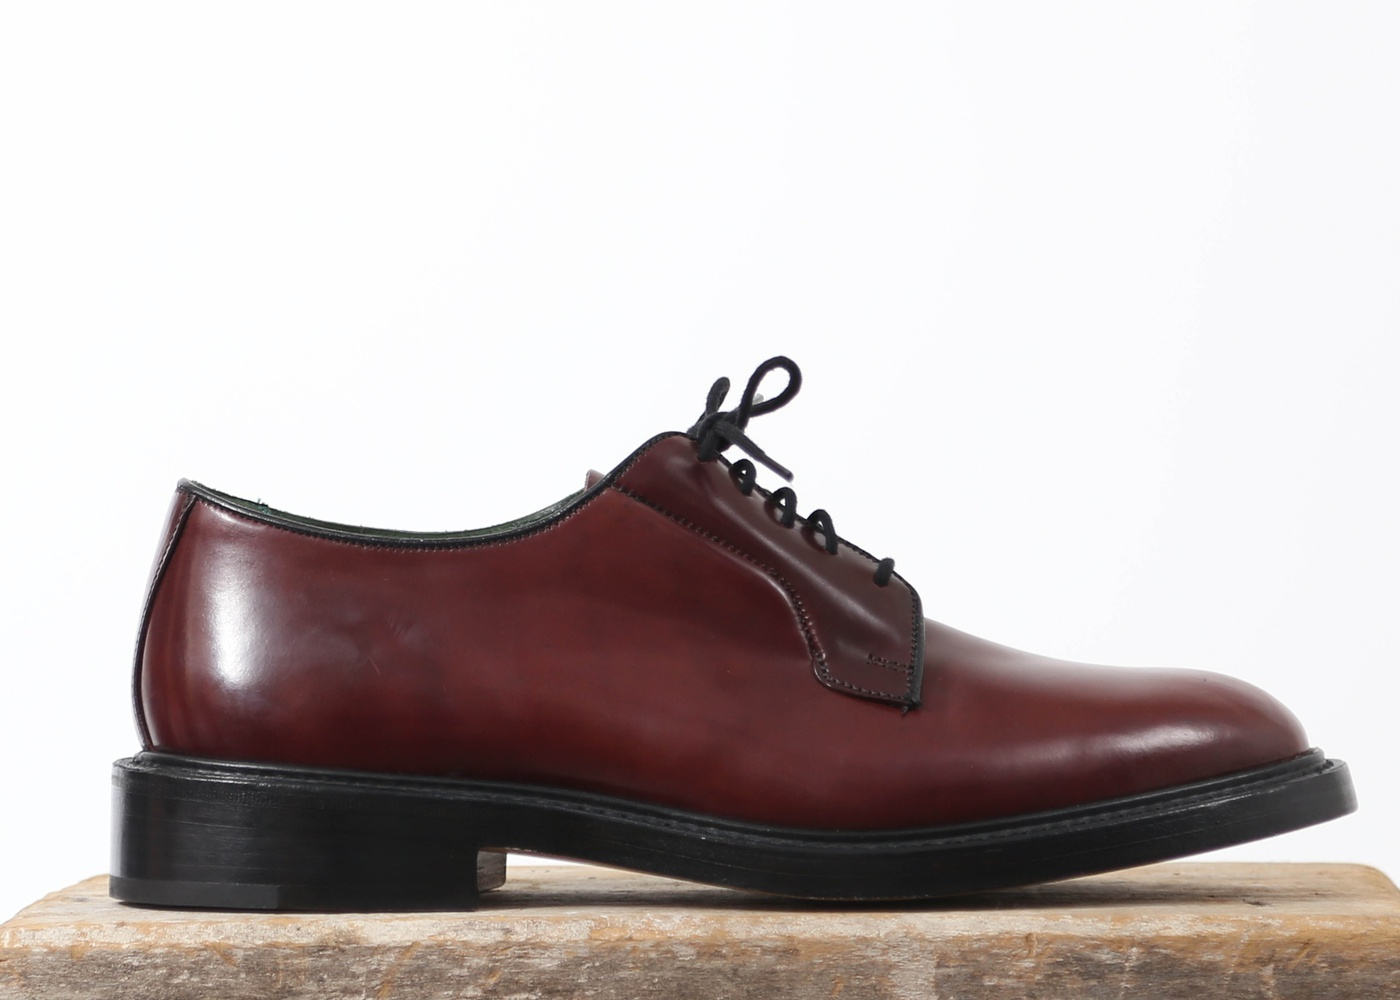 Men's Burgundy Cordovan Derby Shoe nyc